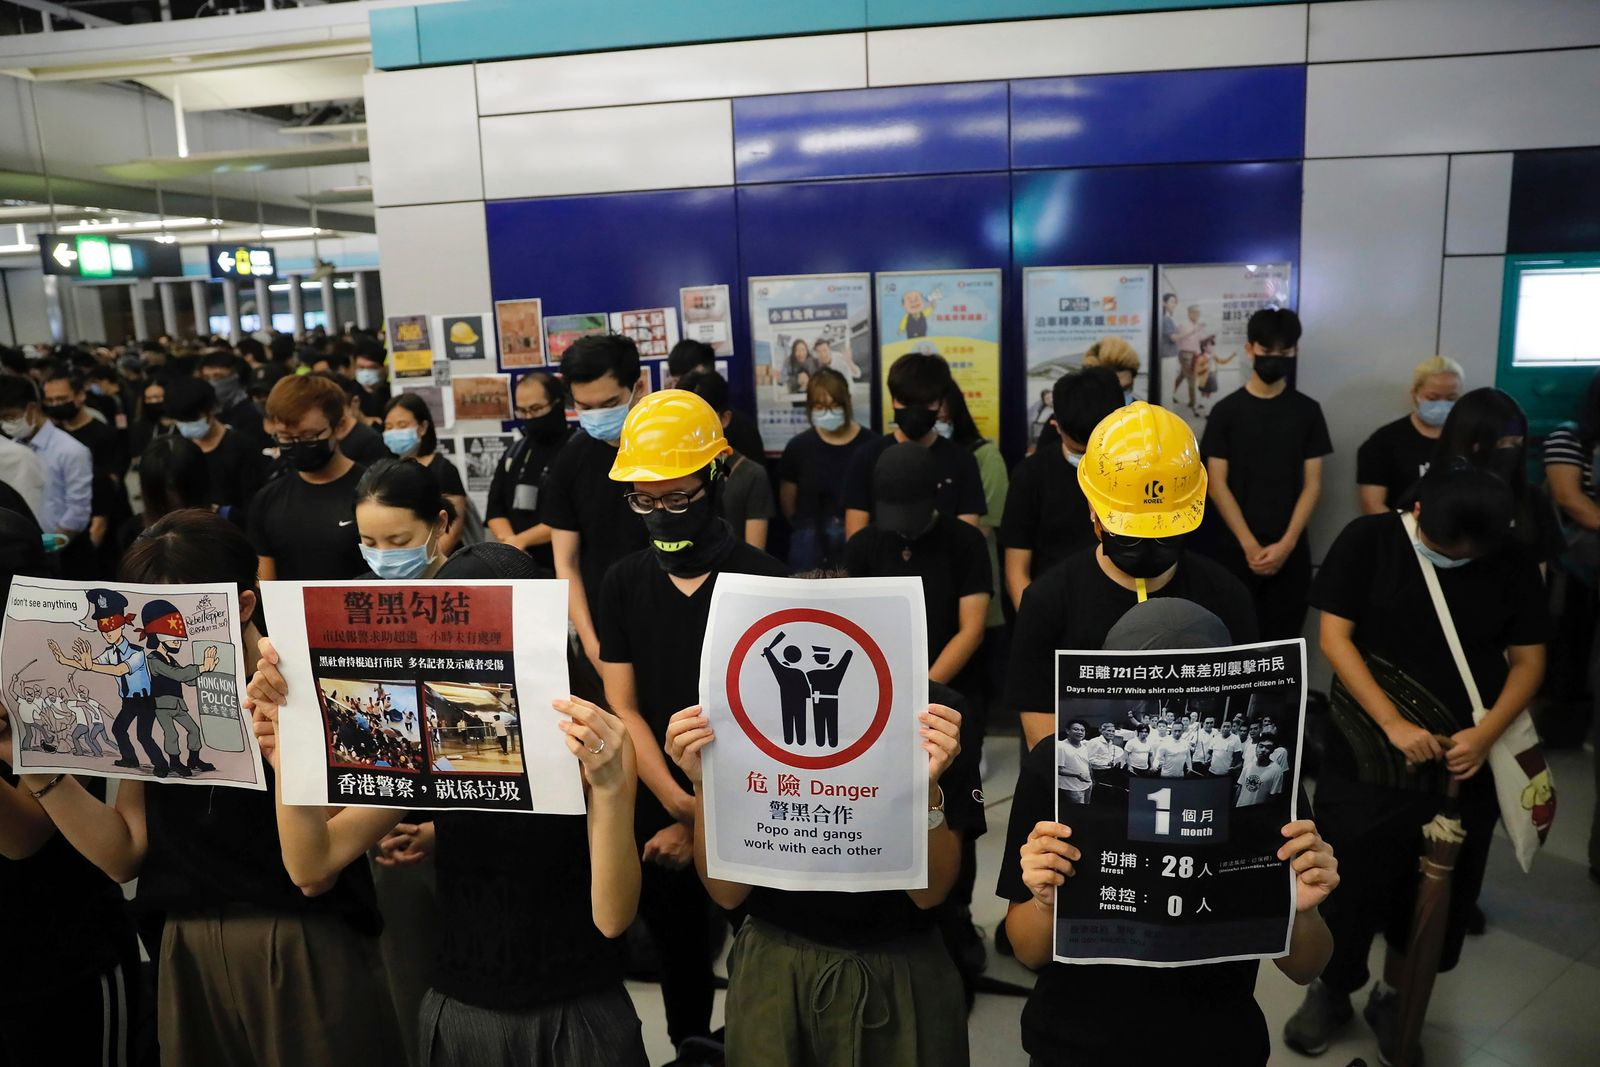 Demonstrators stand during a protest at the Yuen Long MTR station, where demonstrators and others were violently attacked by men in white T-shirts following an earlier protest in July, in Hong Kong, Wednesday, Aug. 21, 2019.{ } (AP Photo/Kin Cheung)